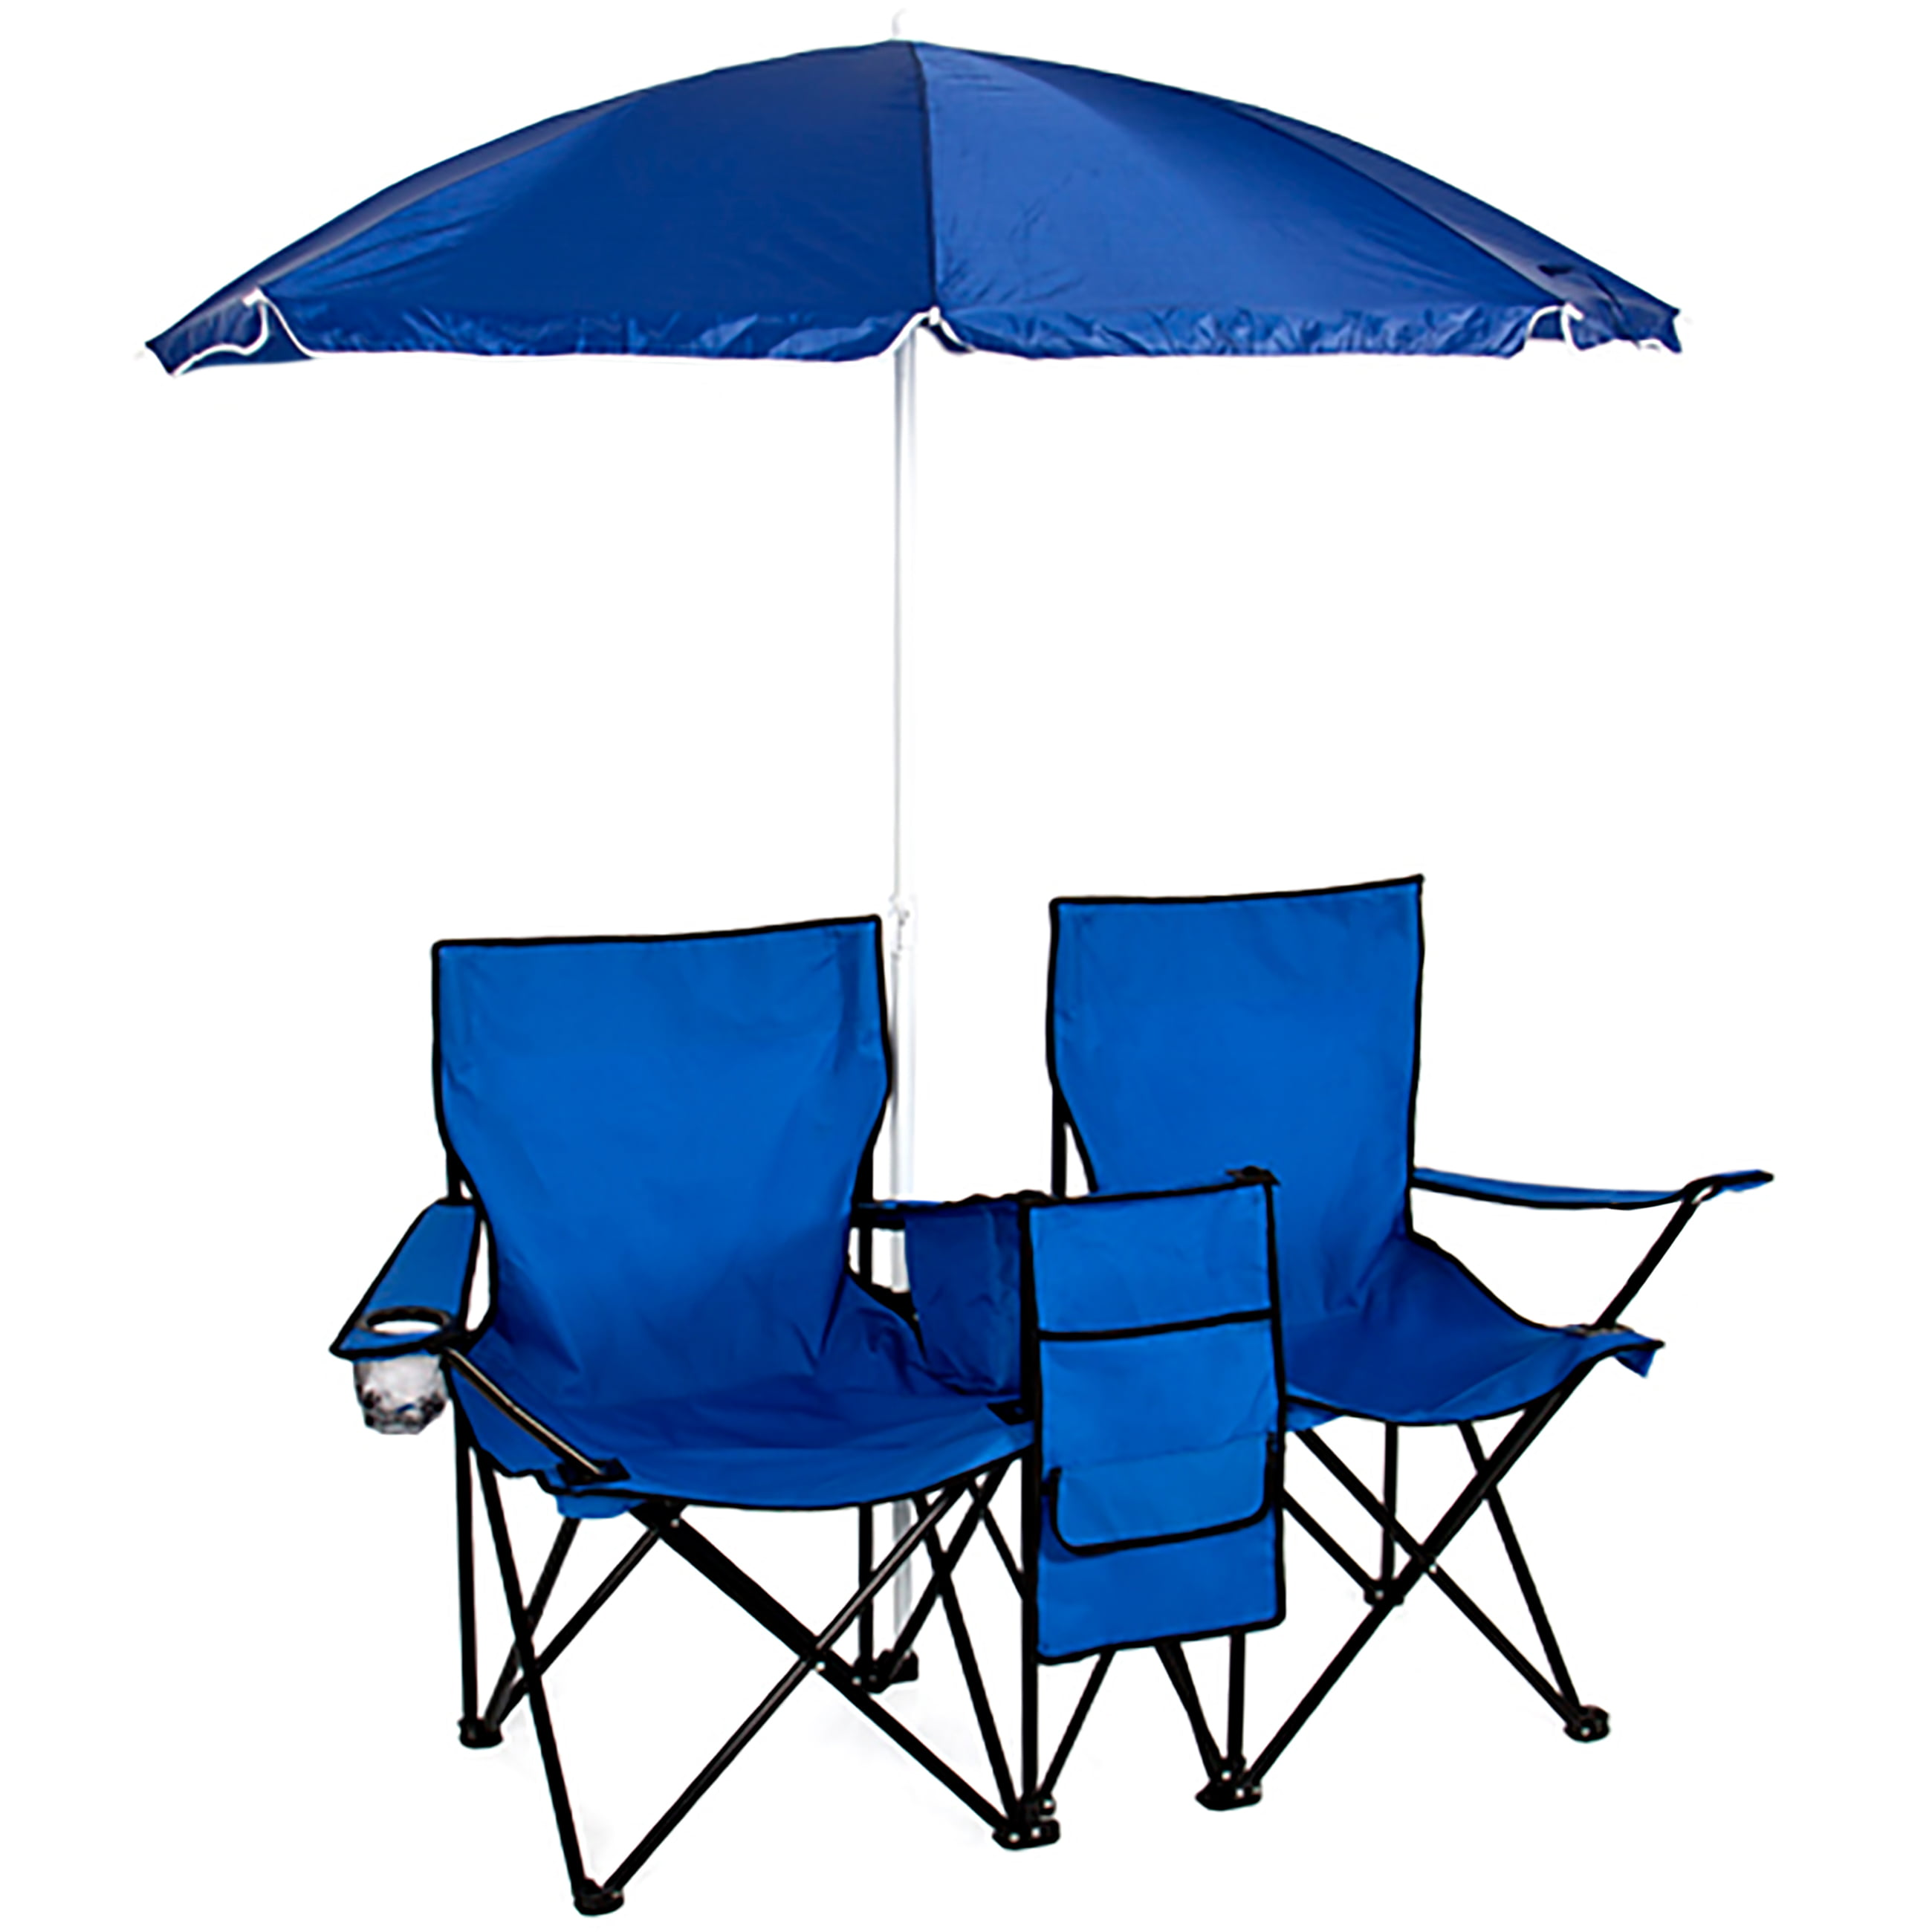 Camping chairs with umbrella - Picnic Double Folding Chair W Umbrella Table Cooler Fold Up Beach Camping Chair Walmart Com